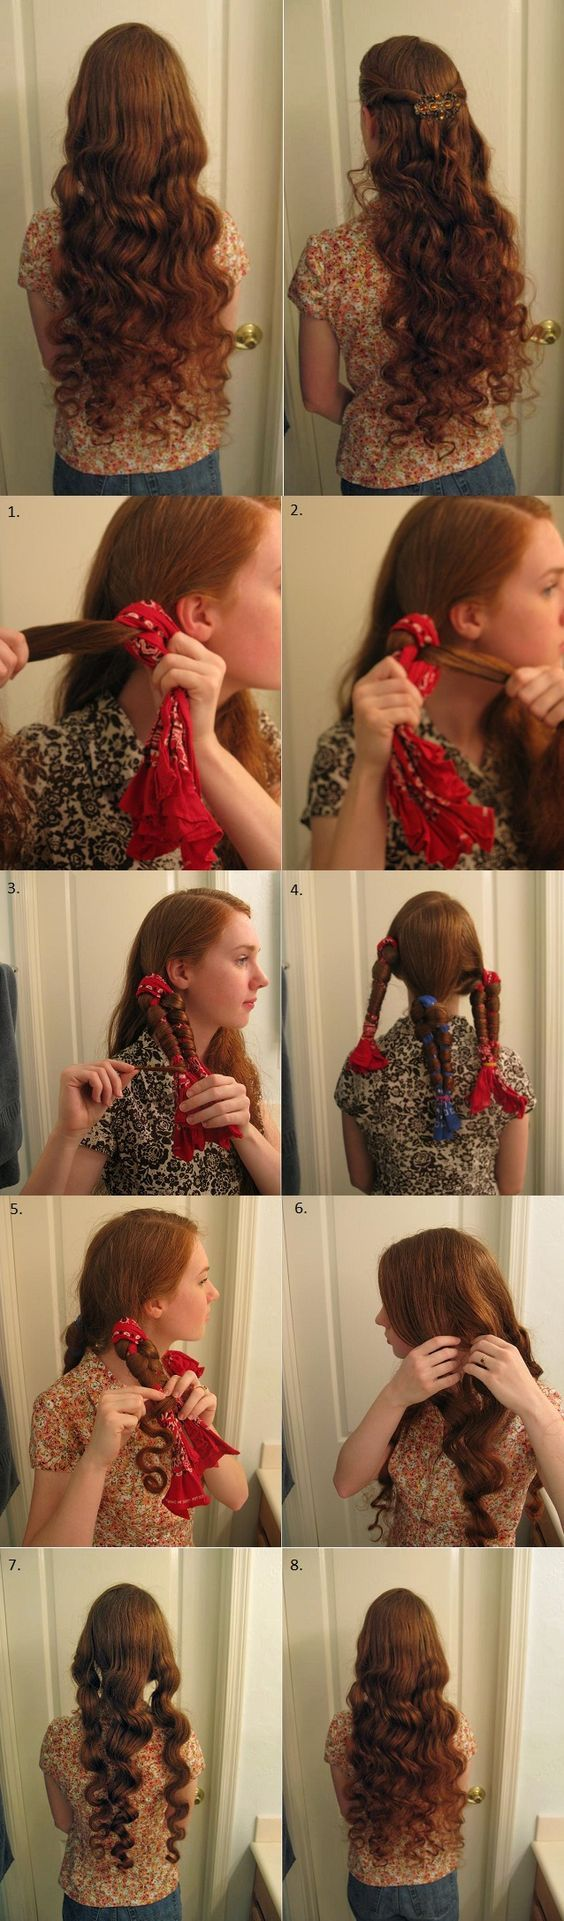 how to get long waves in your hair